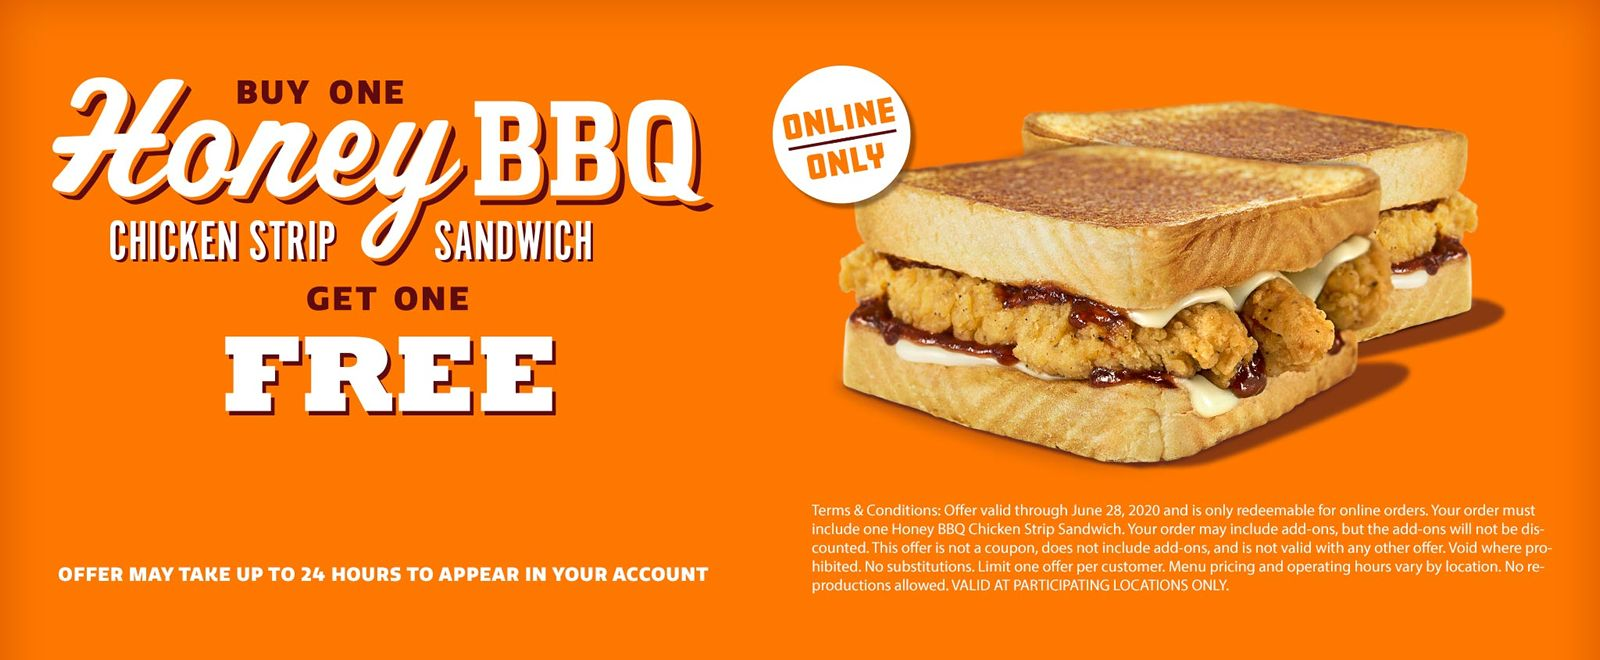 Celebrate Father's Day with Whataburger's Buy One, Get One Deal